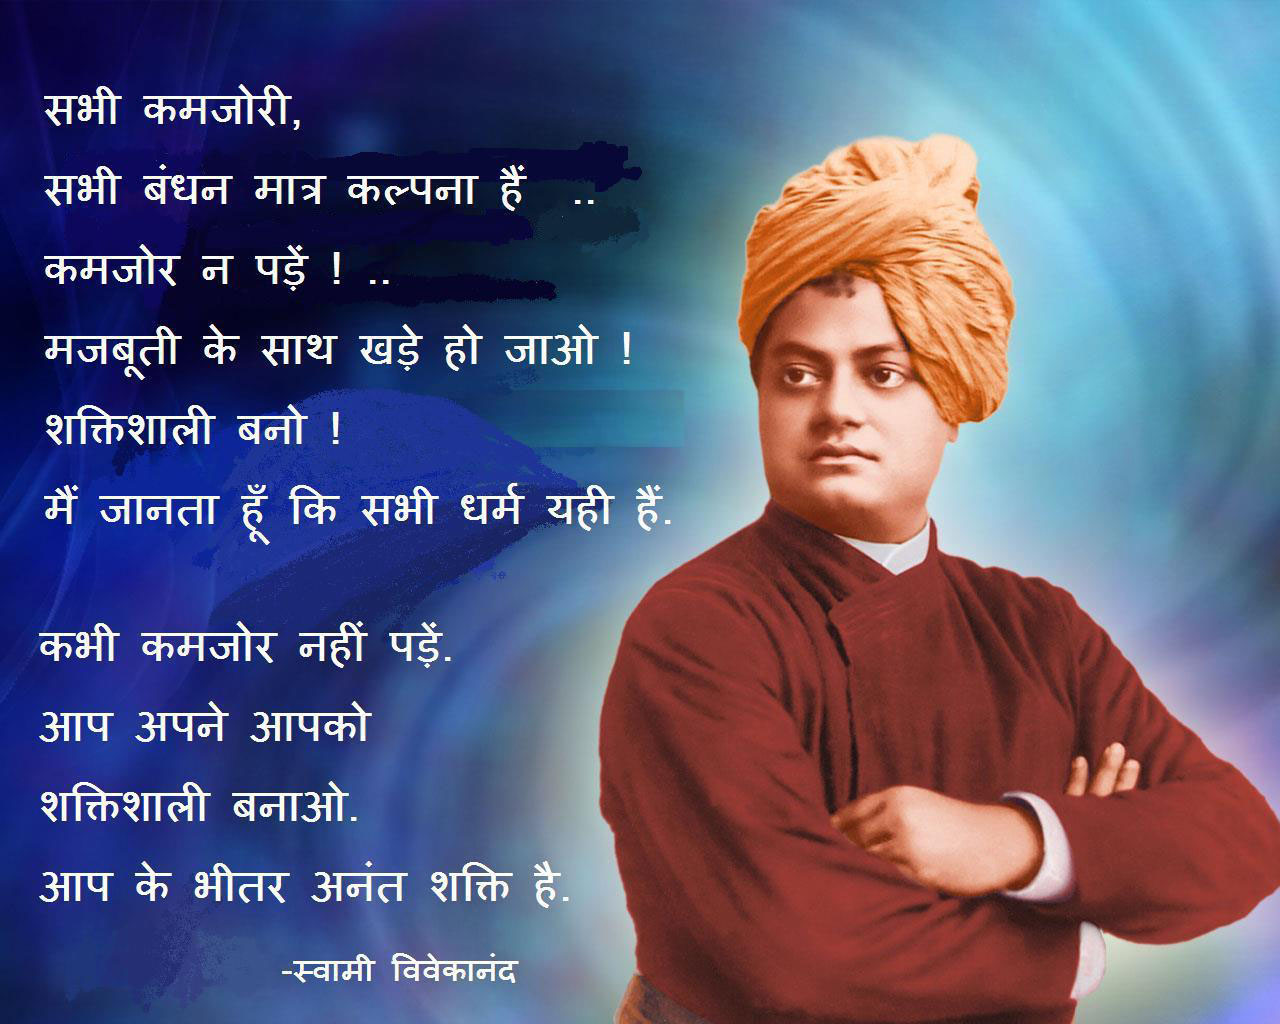 Quotes Vivekananda Swami Vivekananda Quotes & Thoughts In Hindi & English